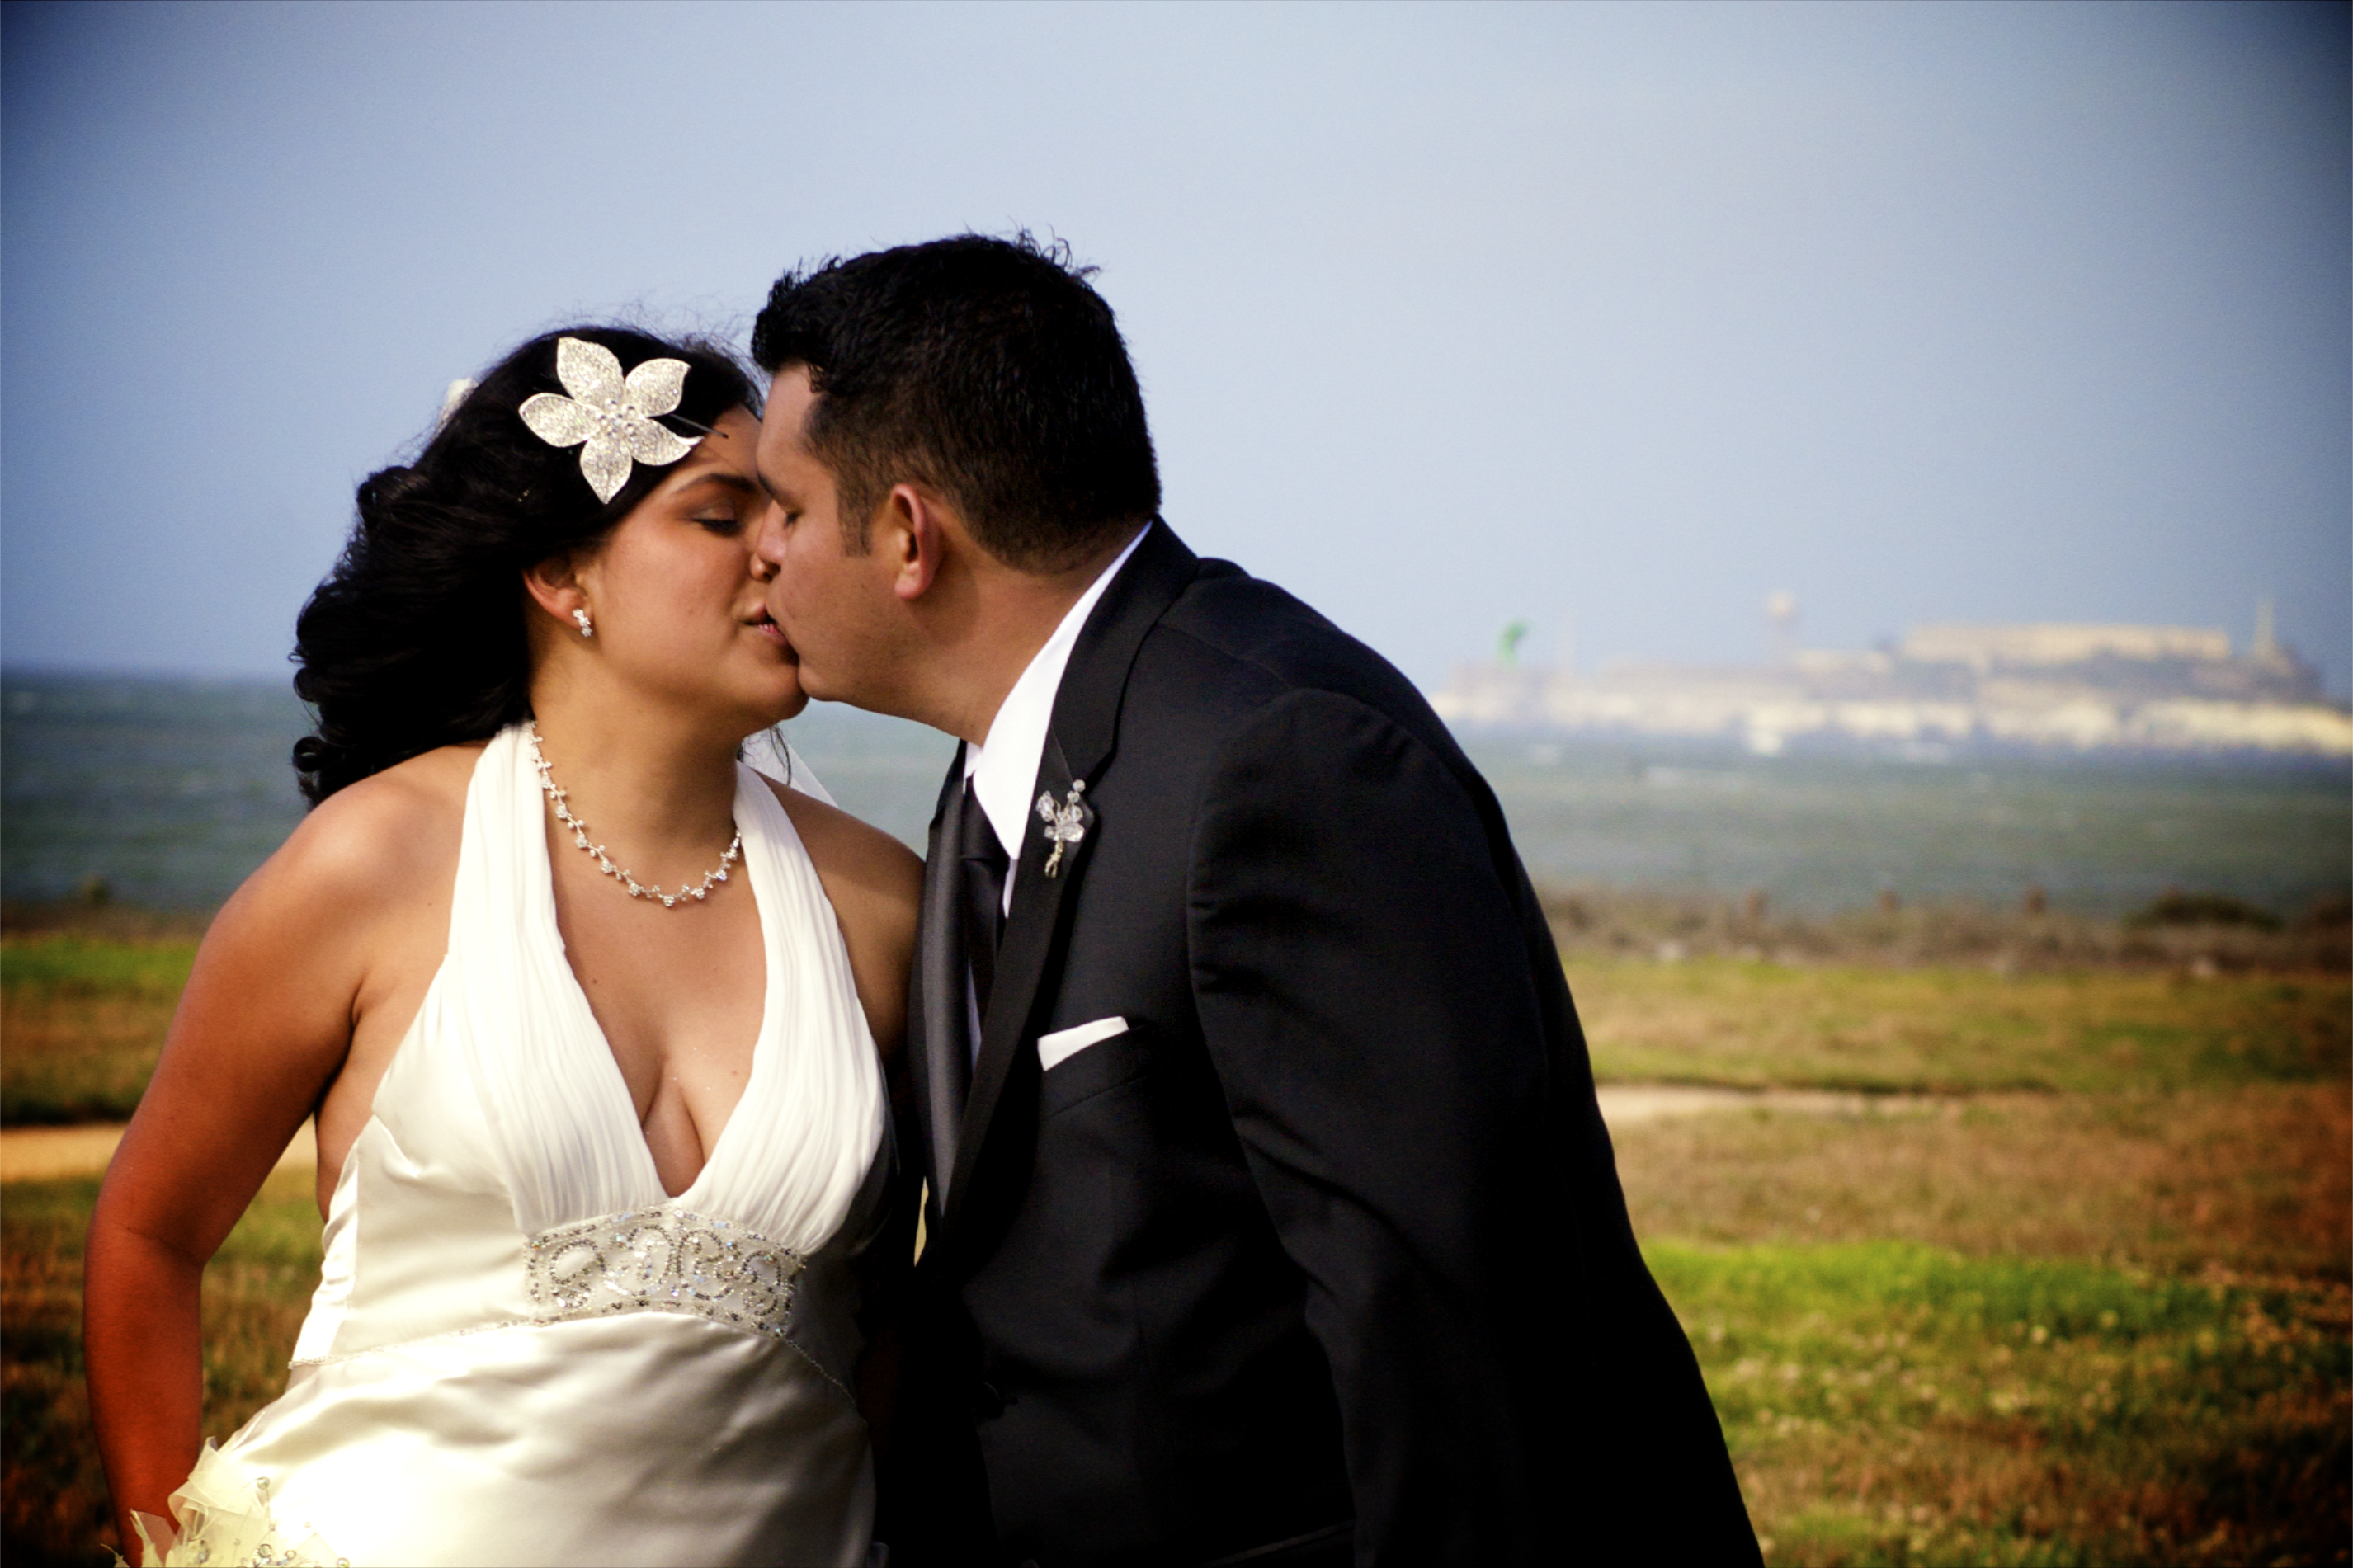 Wedding, Kiss, San francisco, wedding photography, Crissy field, Gloria nunez